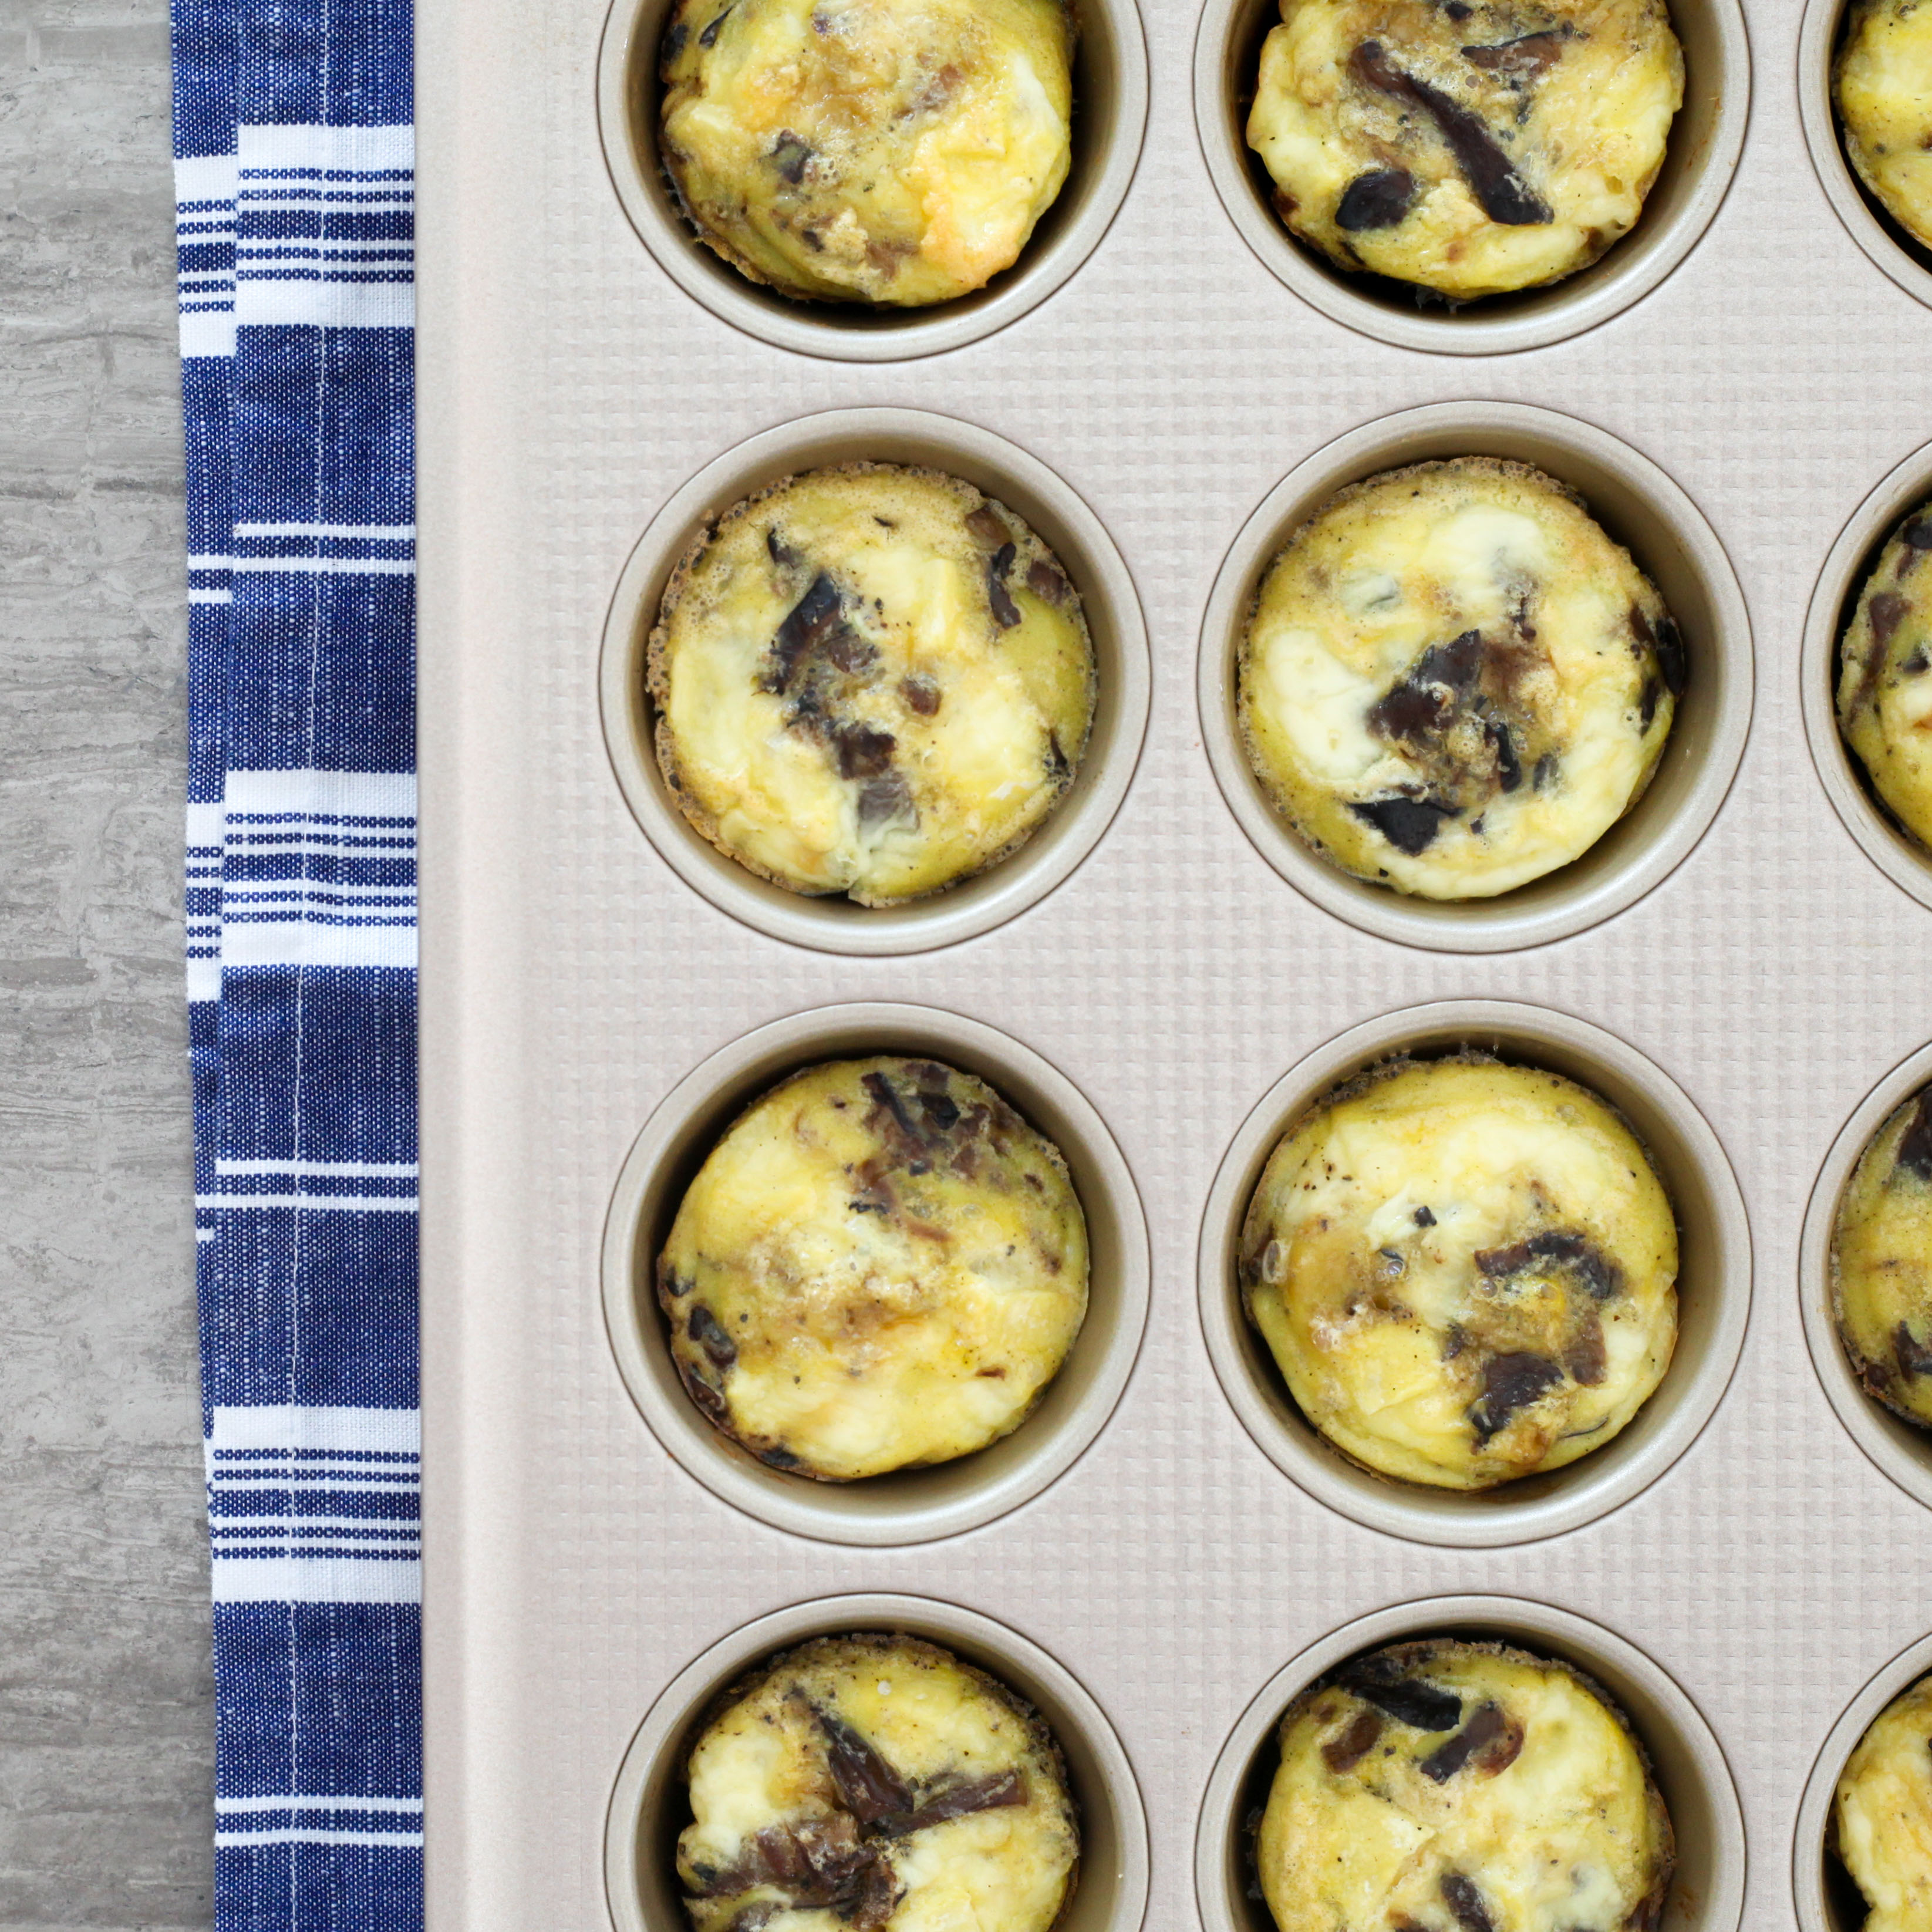 Brie, Mushroom, and Caramelized Onion Egg Muffins | amodestfeast.com | @amodestfeast